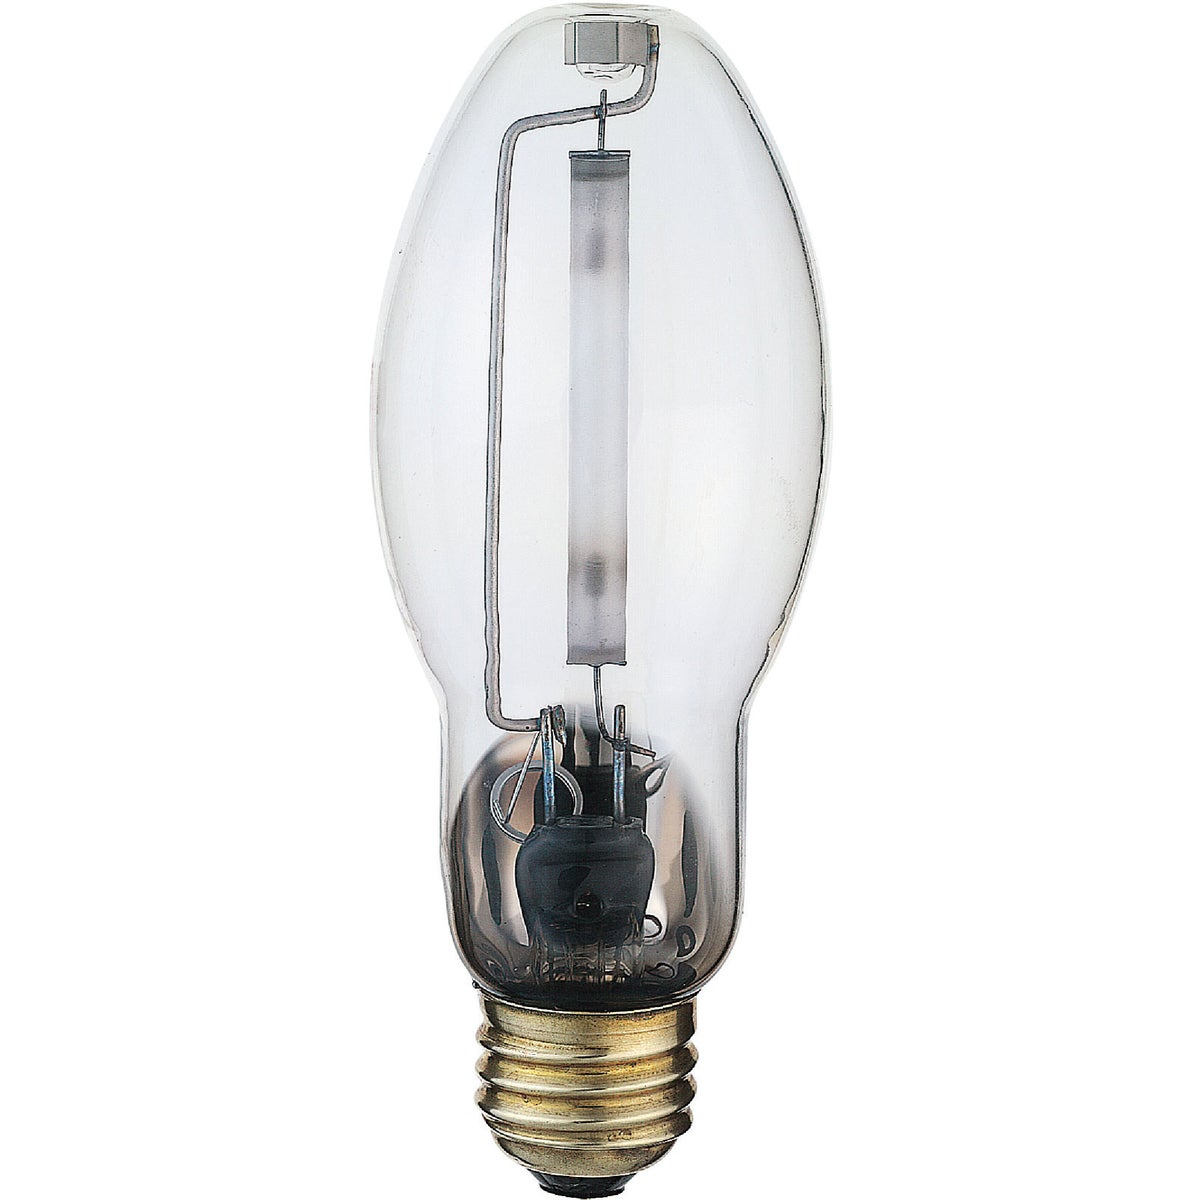 50W HP SODIUM BULB - 26421 by G E Lighting Incom